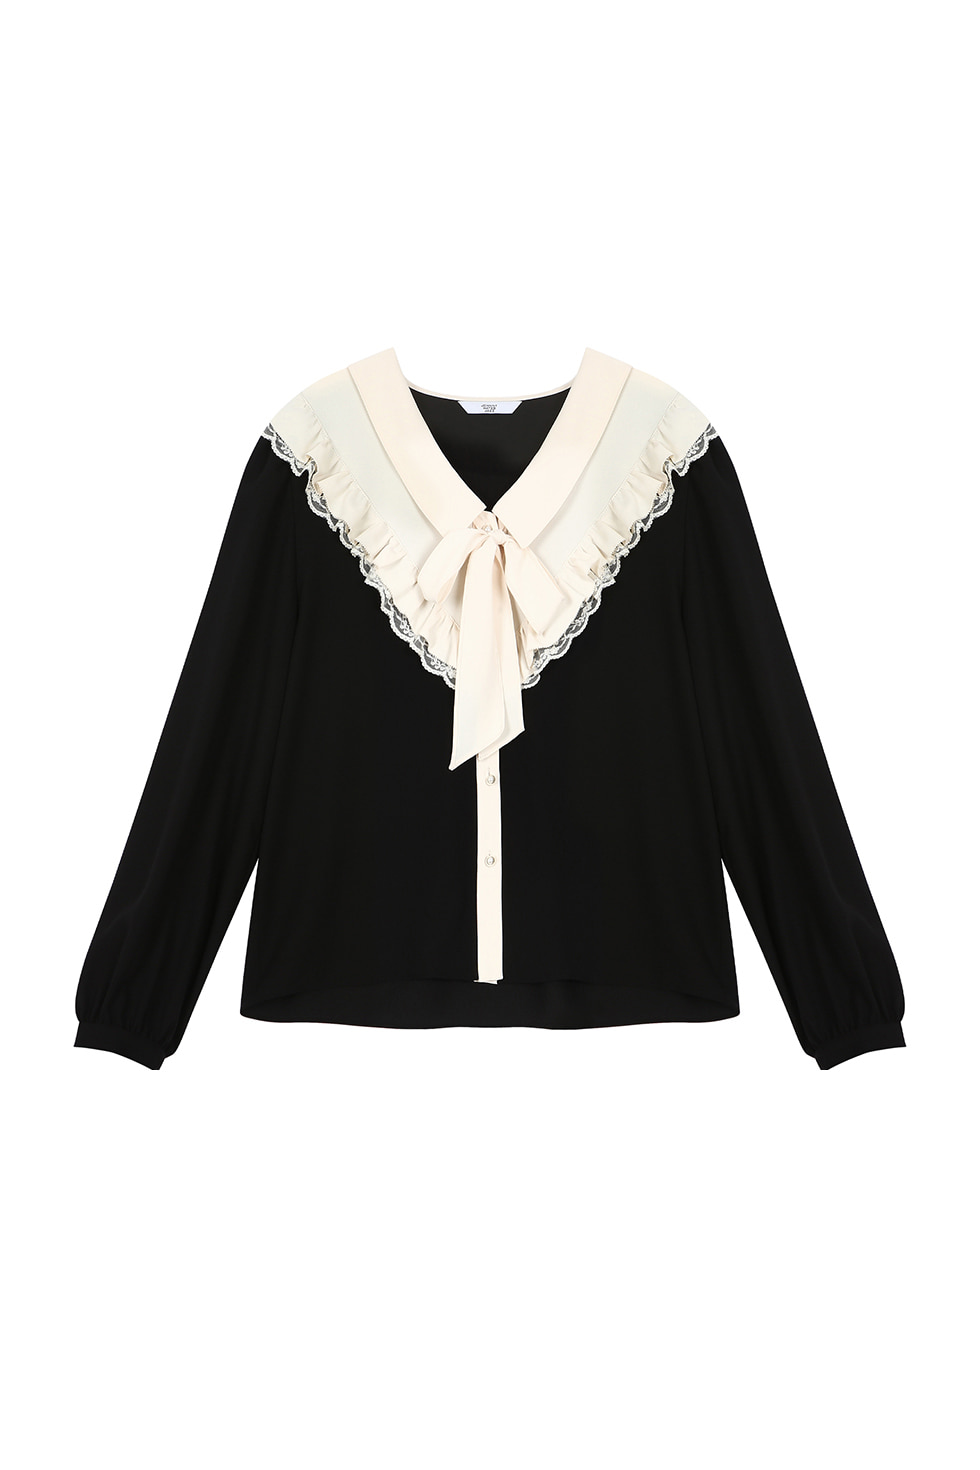 RIBBON TIE BLOUSE - BLACK